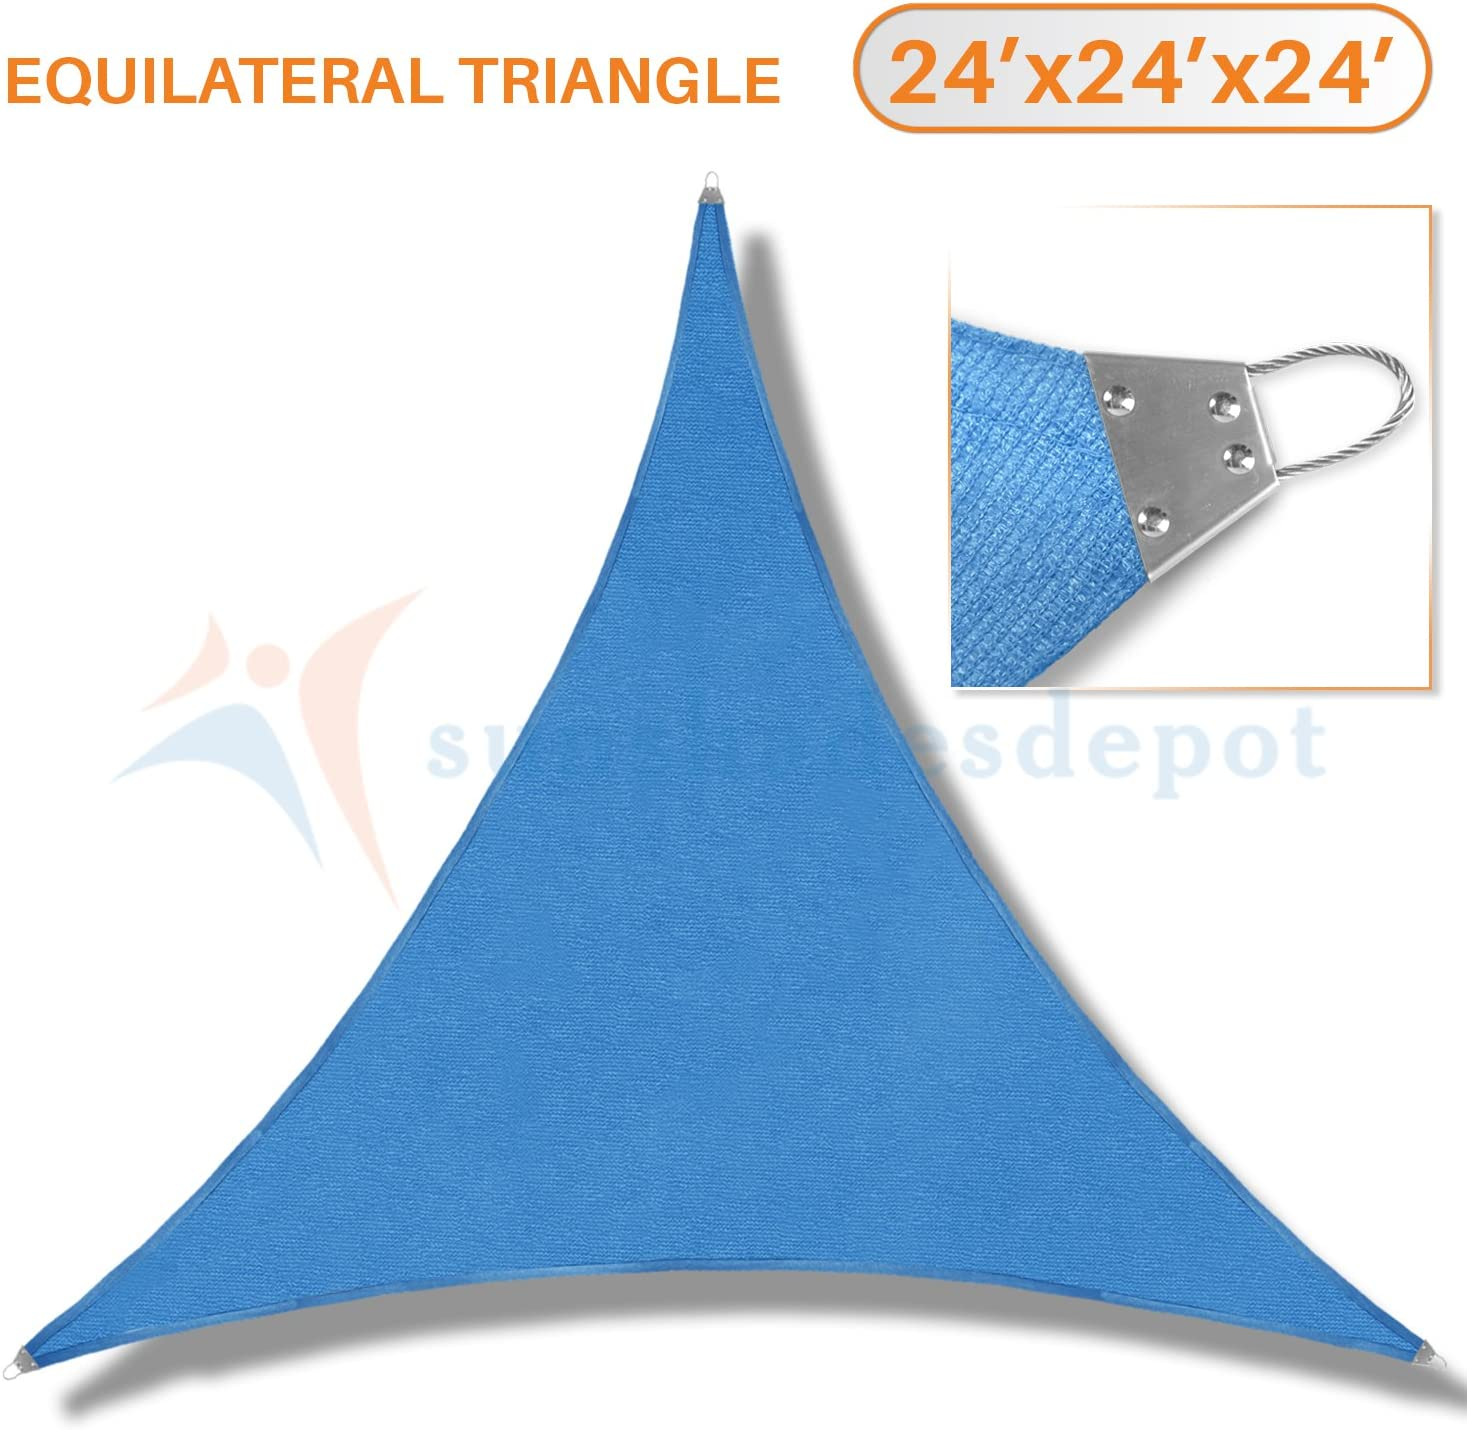 TANG Sunshades Depot 24 x24 x24 Reinforcement Large Sun Shade Sail Blue Equilateral Triangle Heavy Duty Metal Spring Outdoor Permeable UV Block Fabric Durable Steel Wire Strengthen 160 GSM